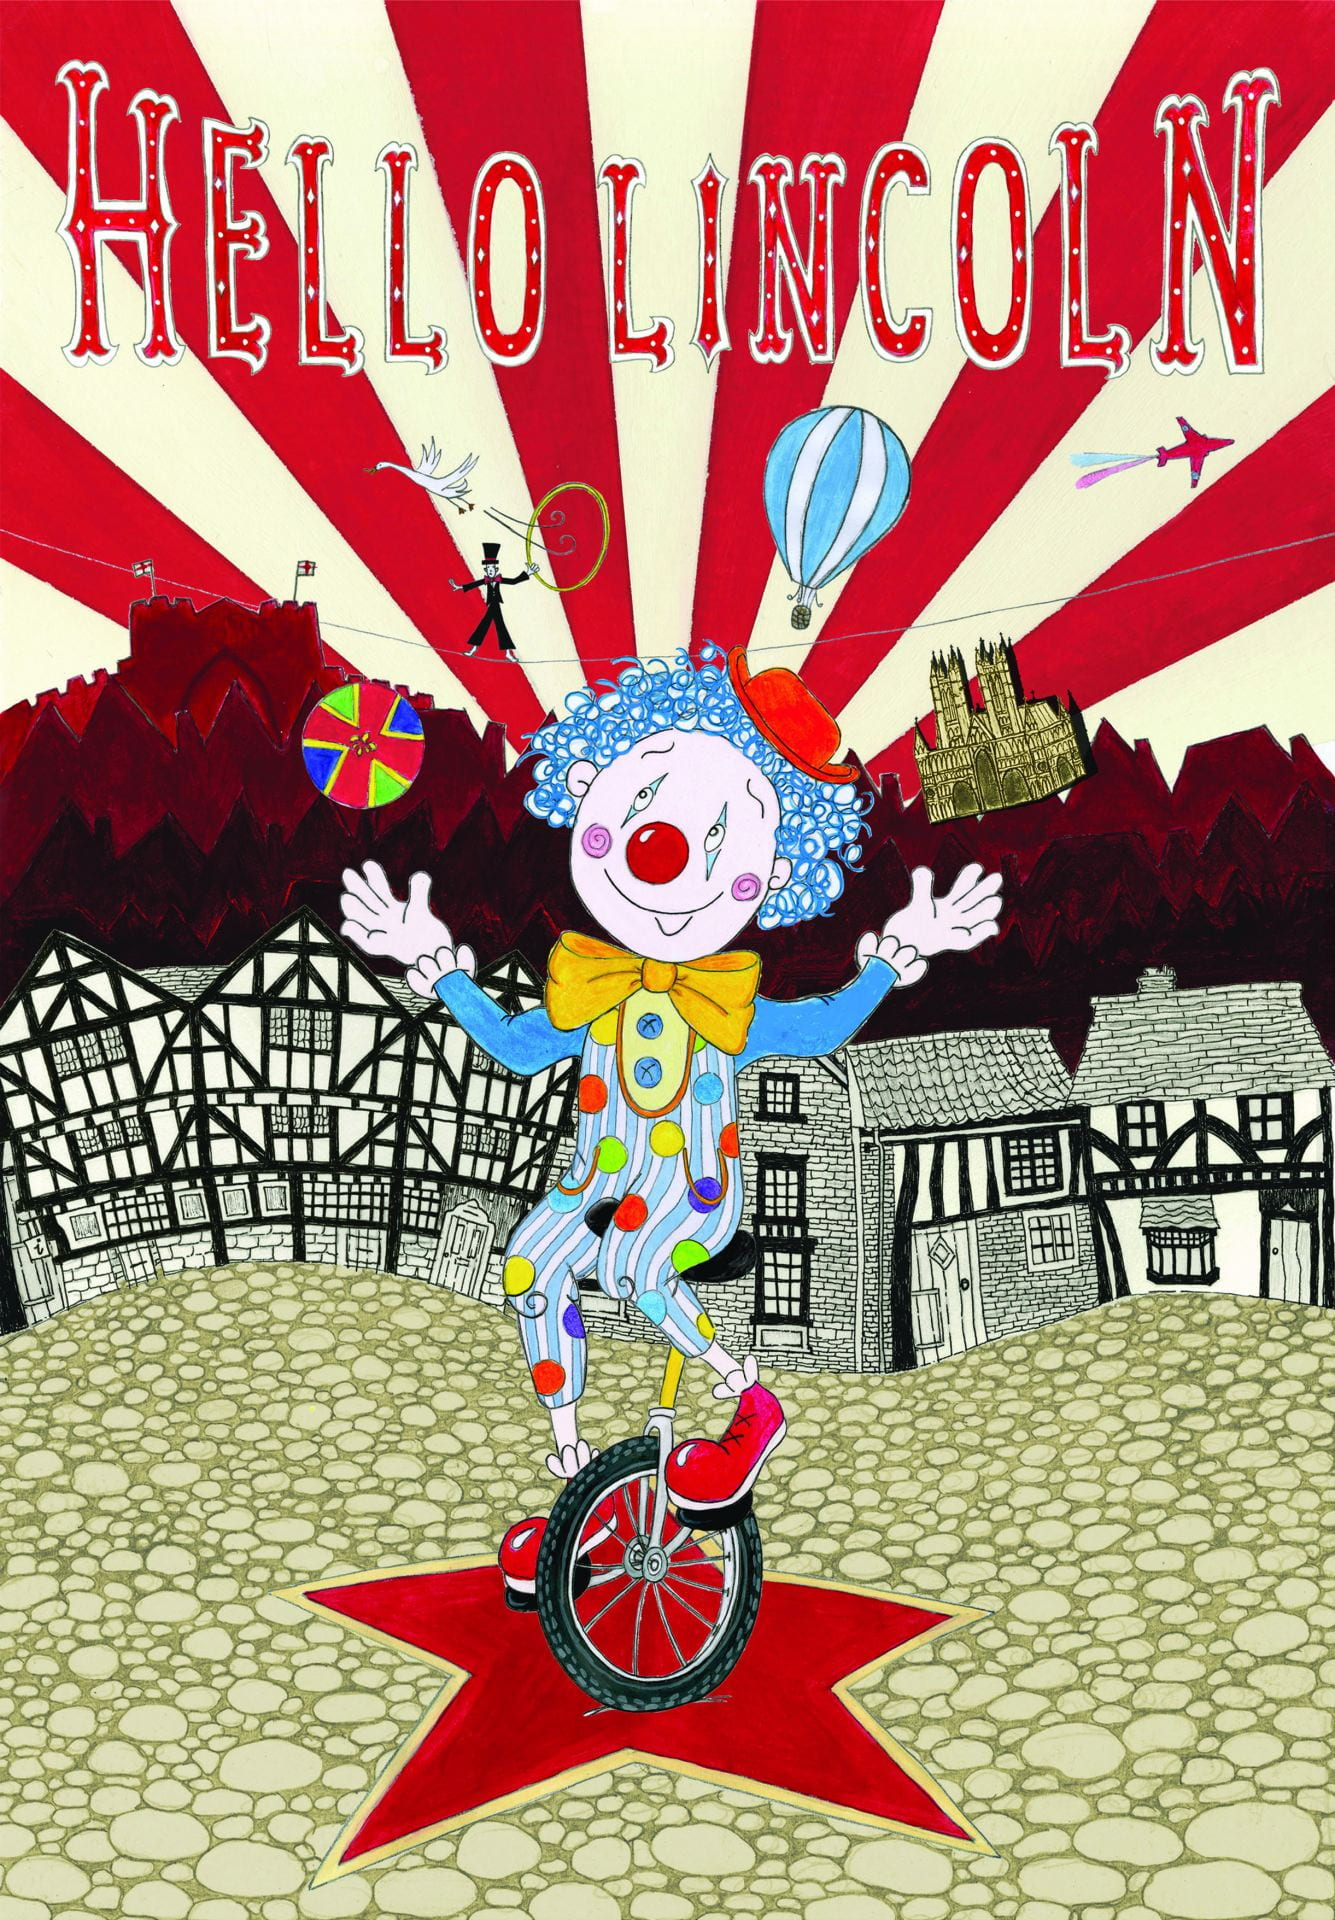 Illustration, a clown on a unicycle juggling, a red and white striped pattern with houses are in the background, text above reads: